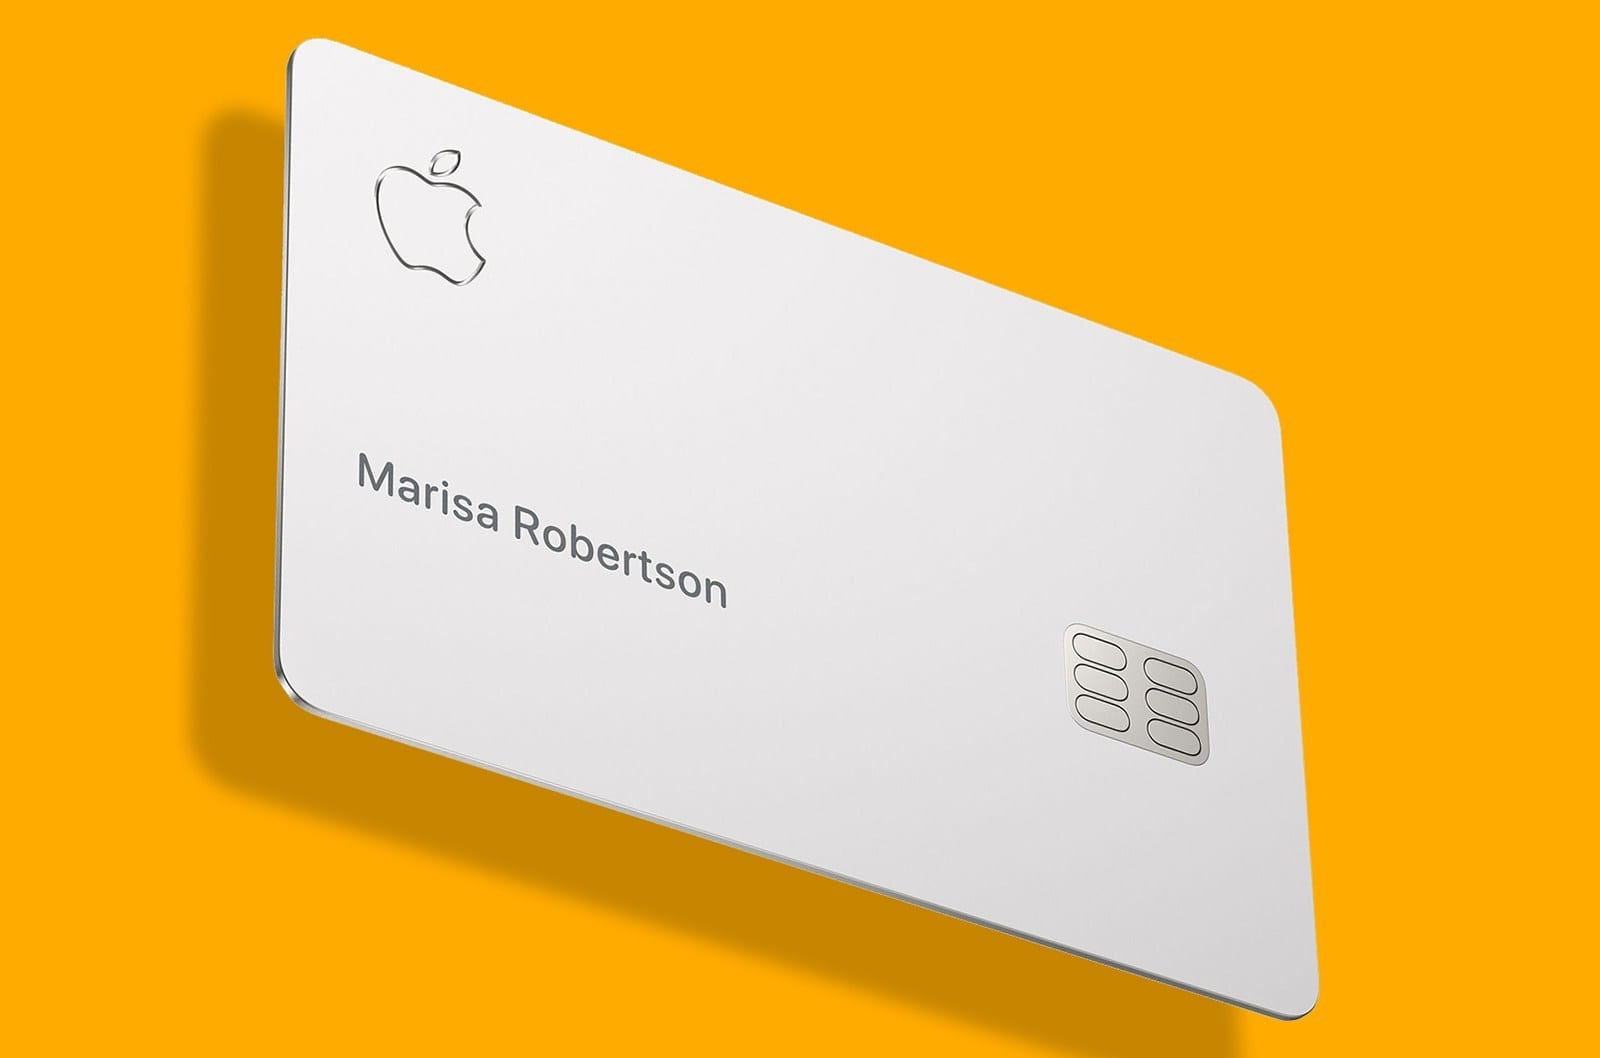 Apple Card cannot be stored in leather wallets